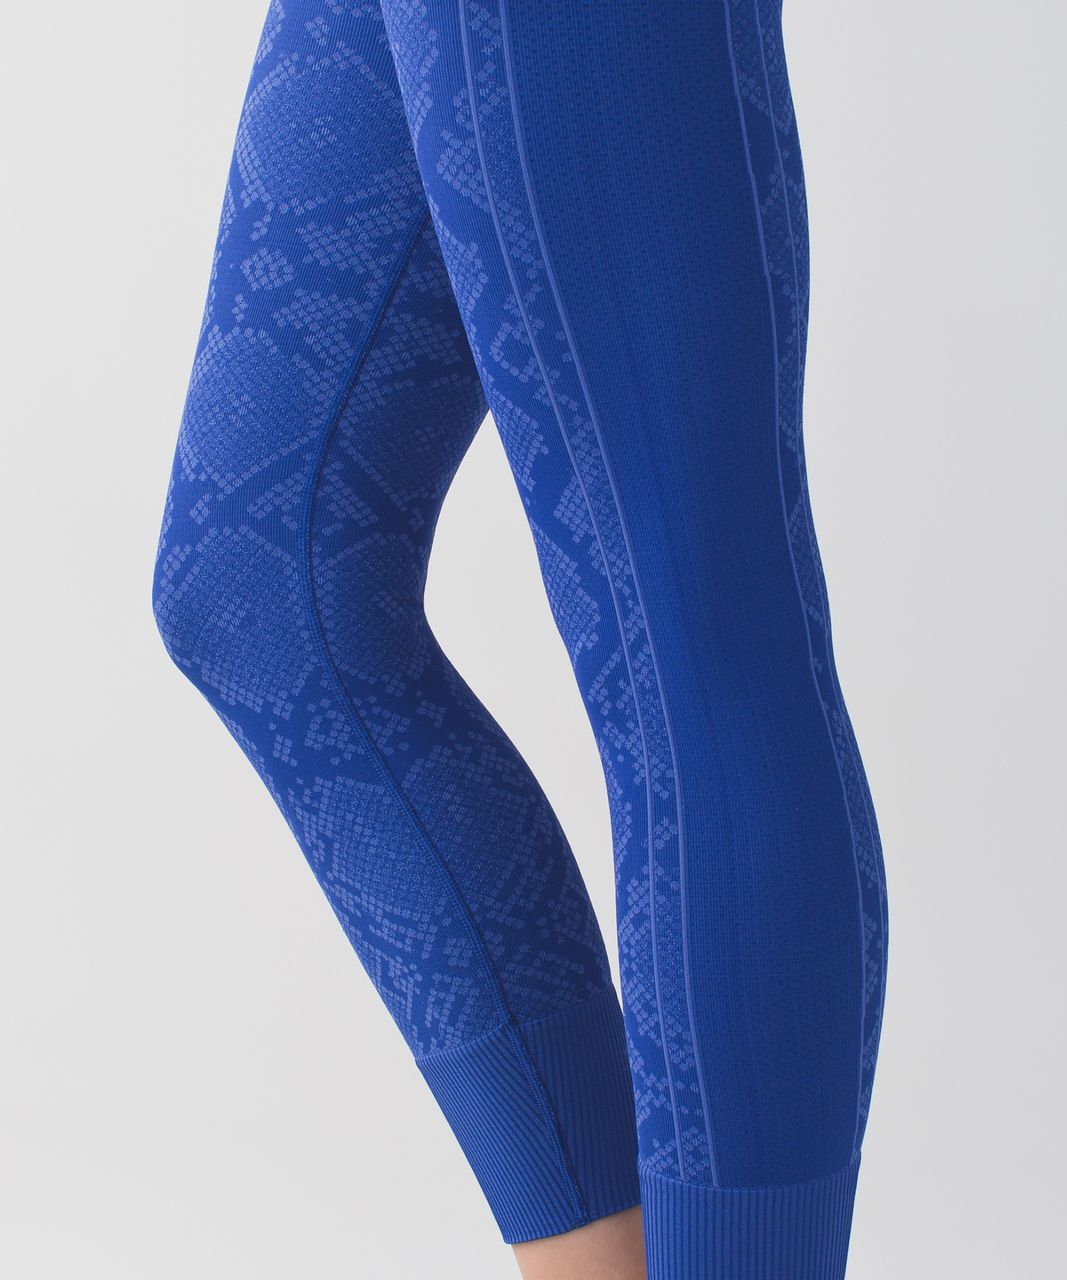 Lululemon Ebb To Street Pant - Heathered Sapphire Blue